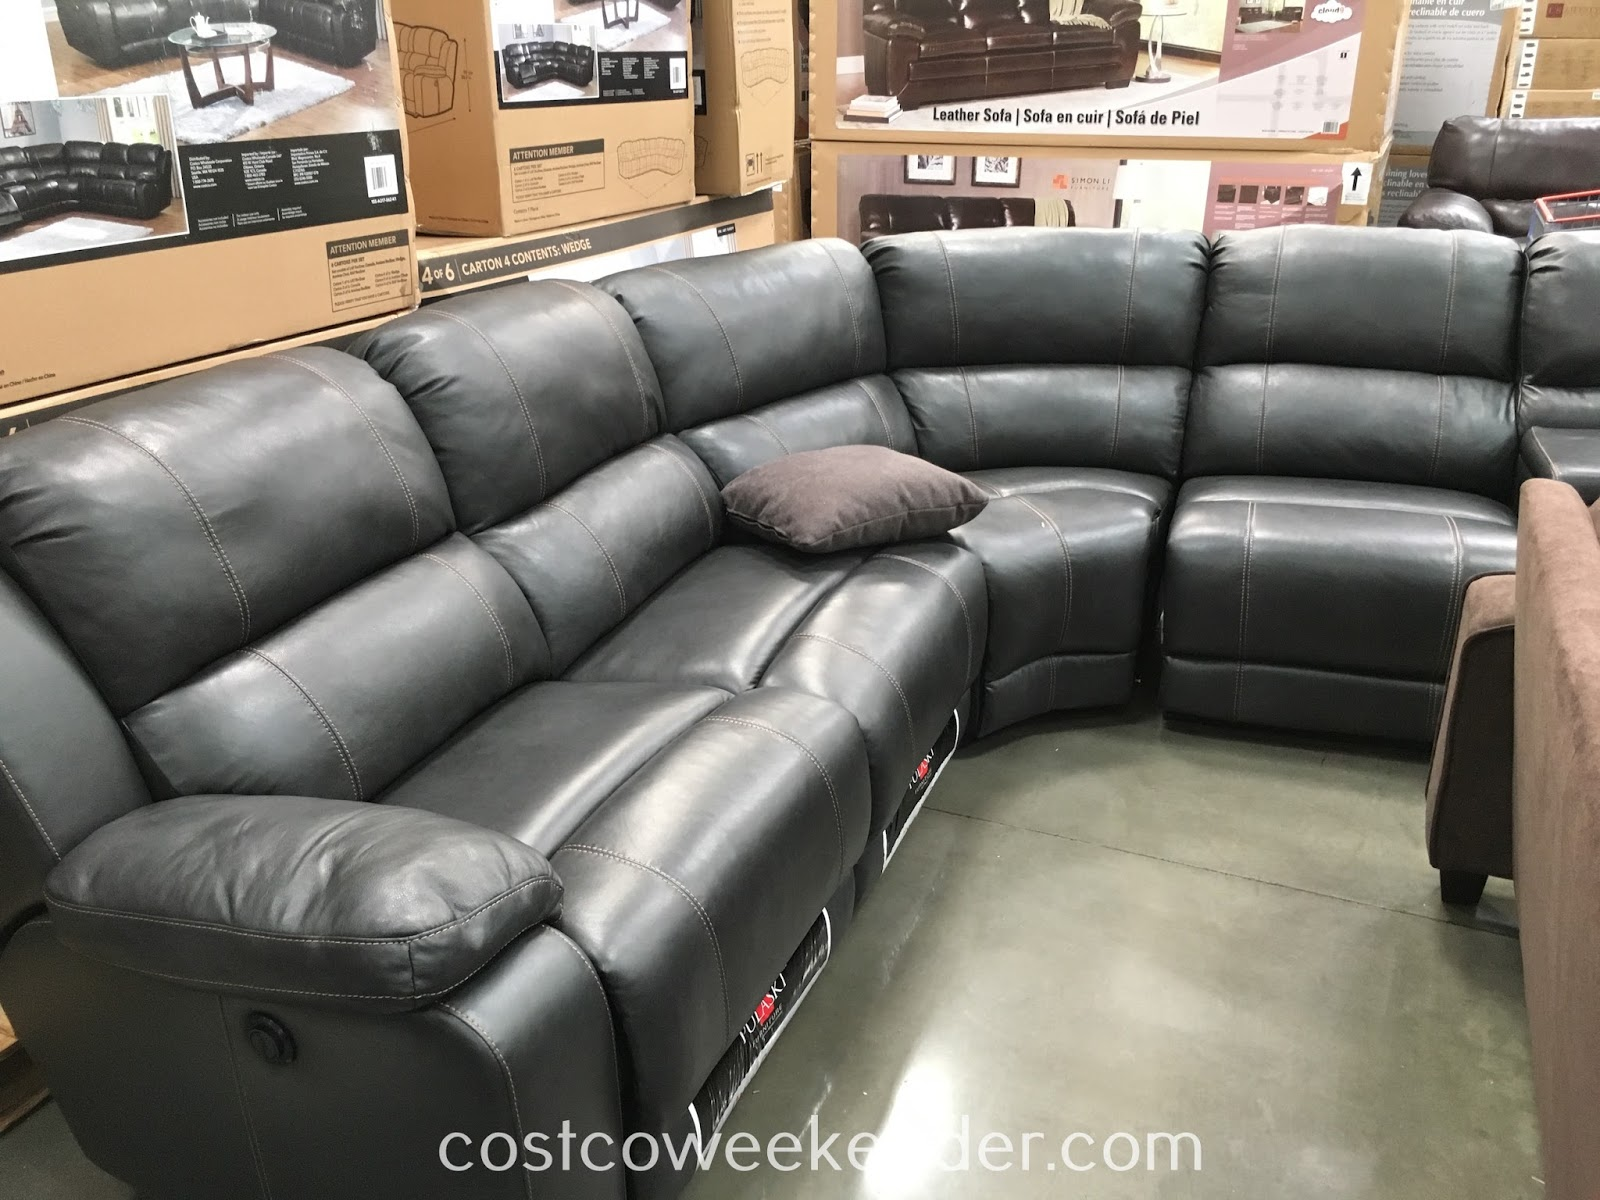 Costco Lounge Chairs | Costco Leather Sectional | Costco Leather Sectional